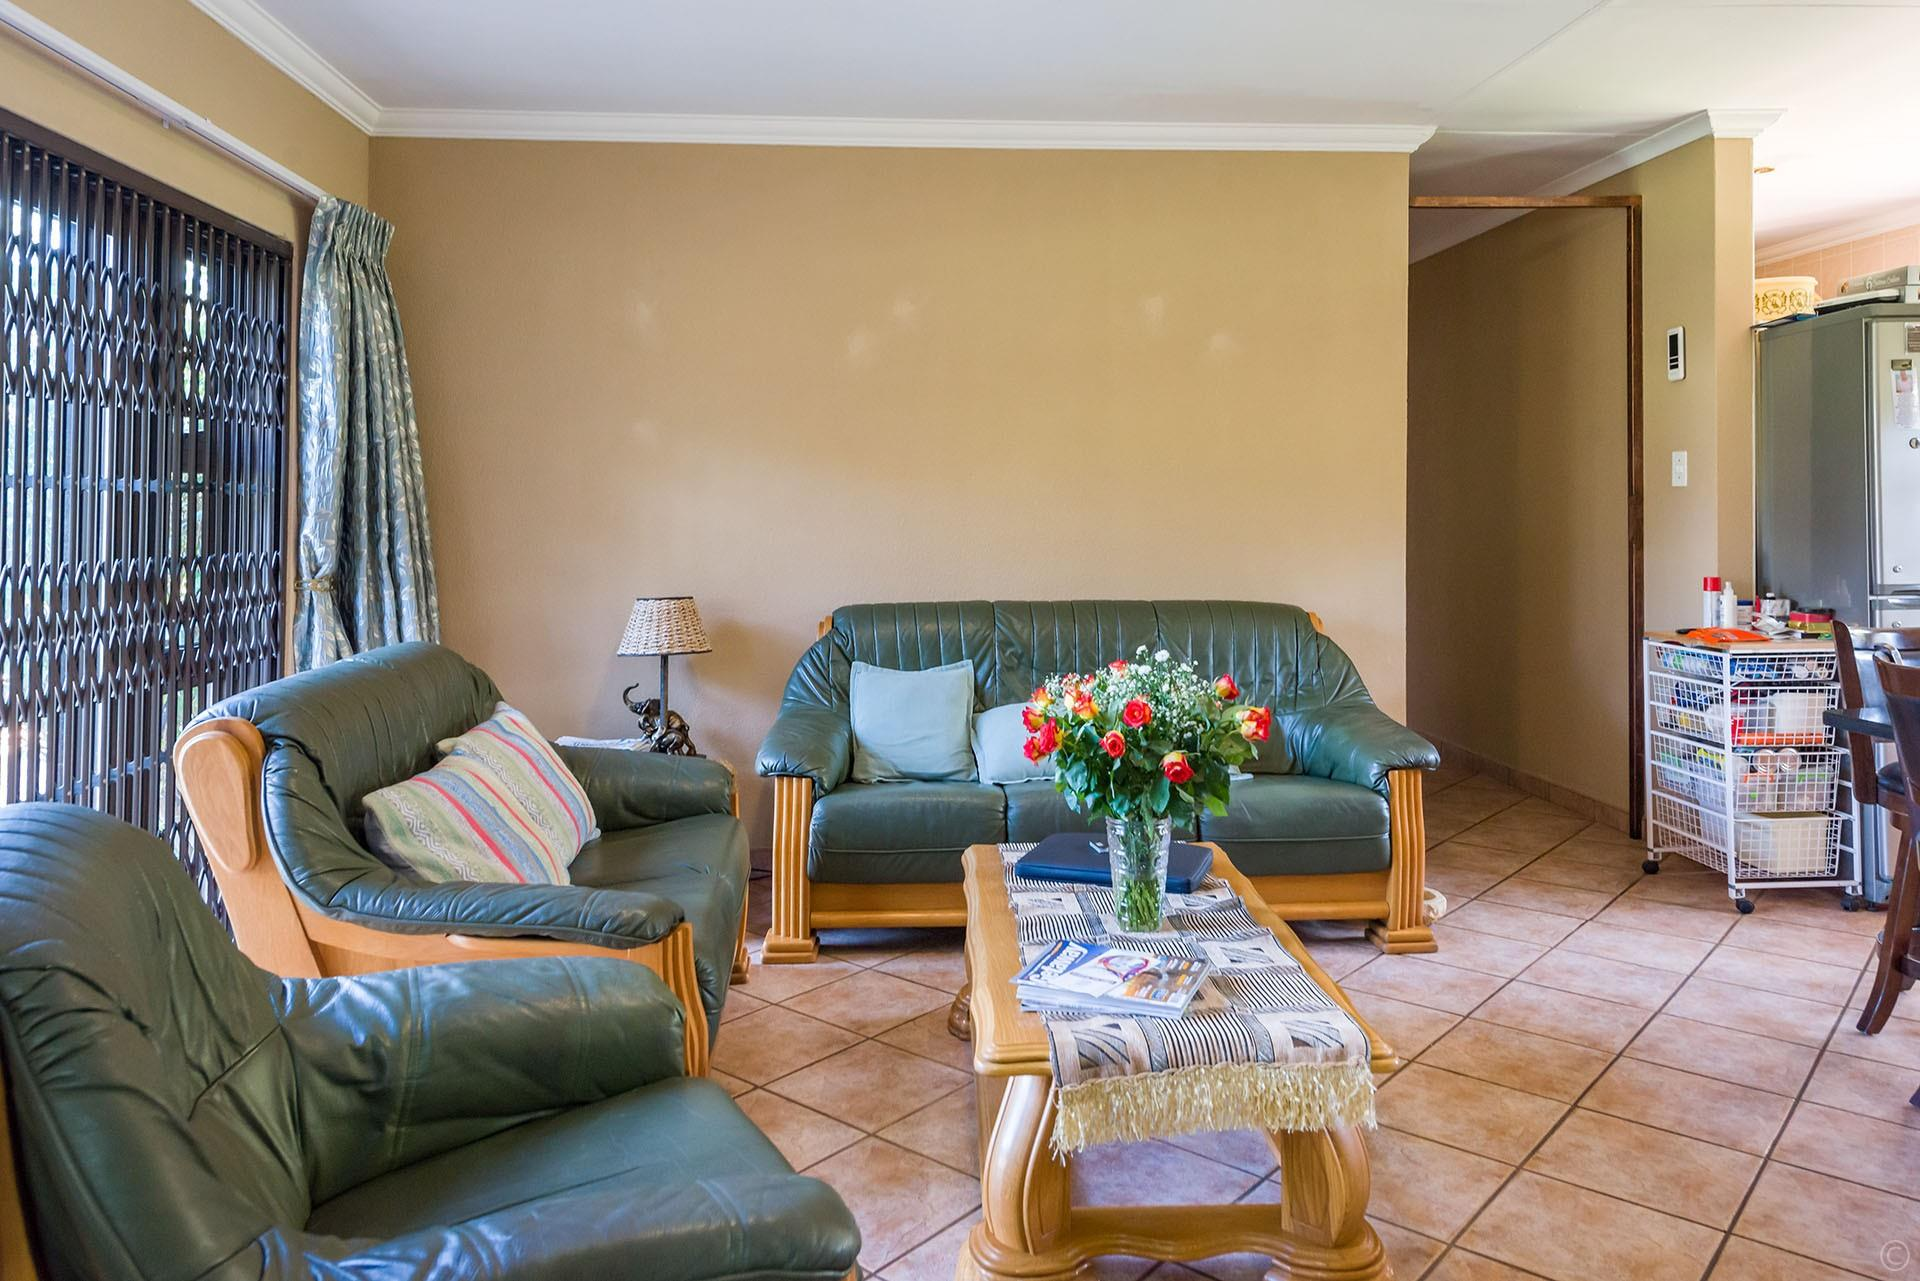 12 Bedroom House For Sale in Vaal Marina